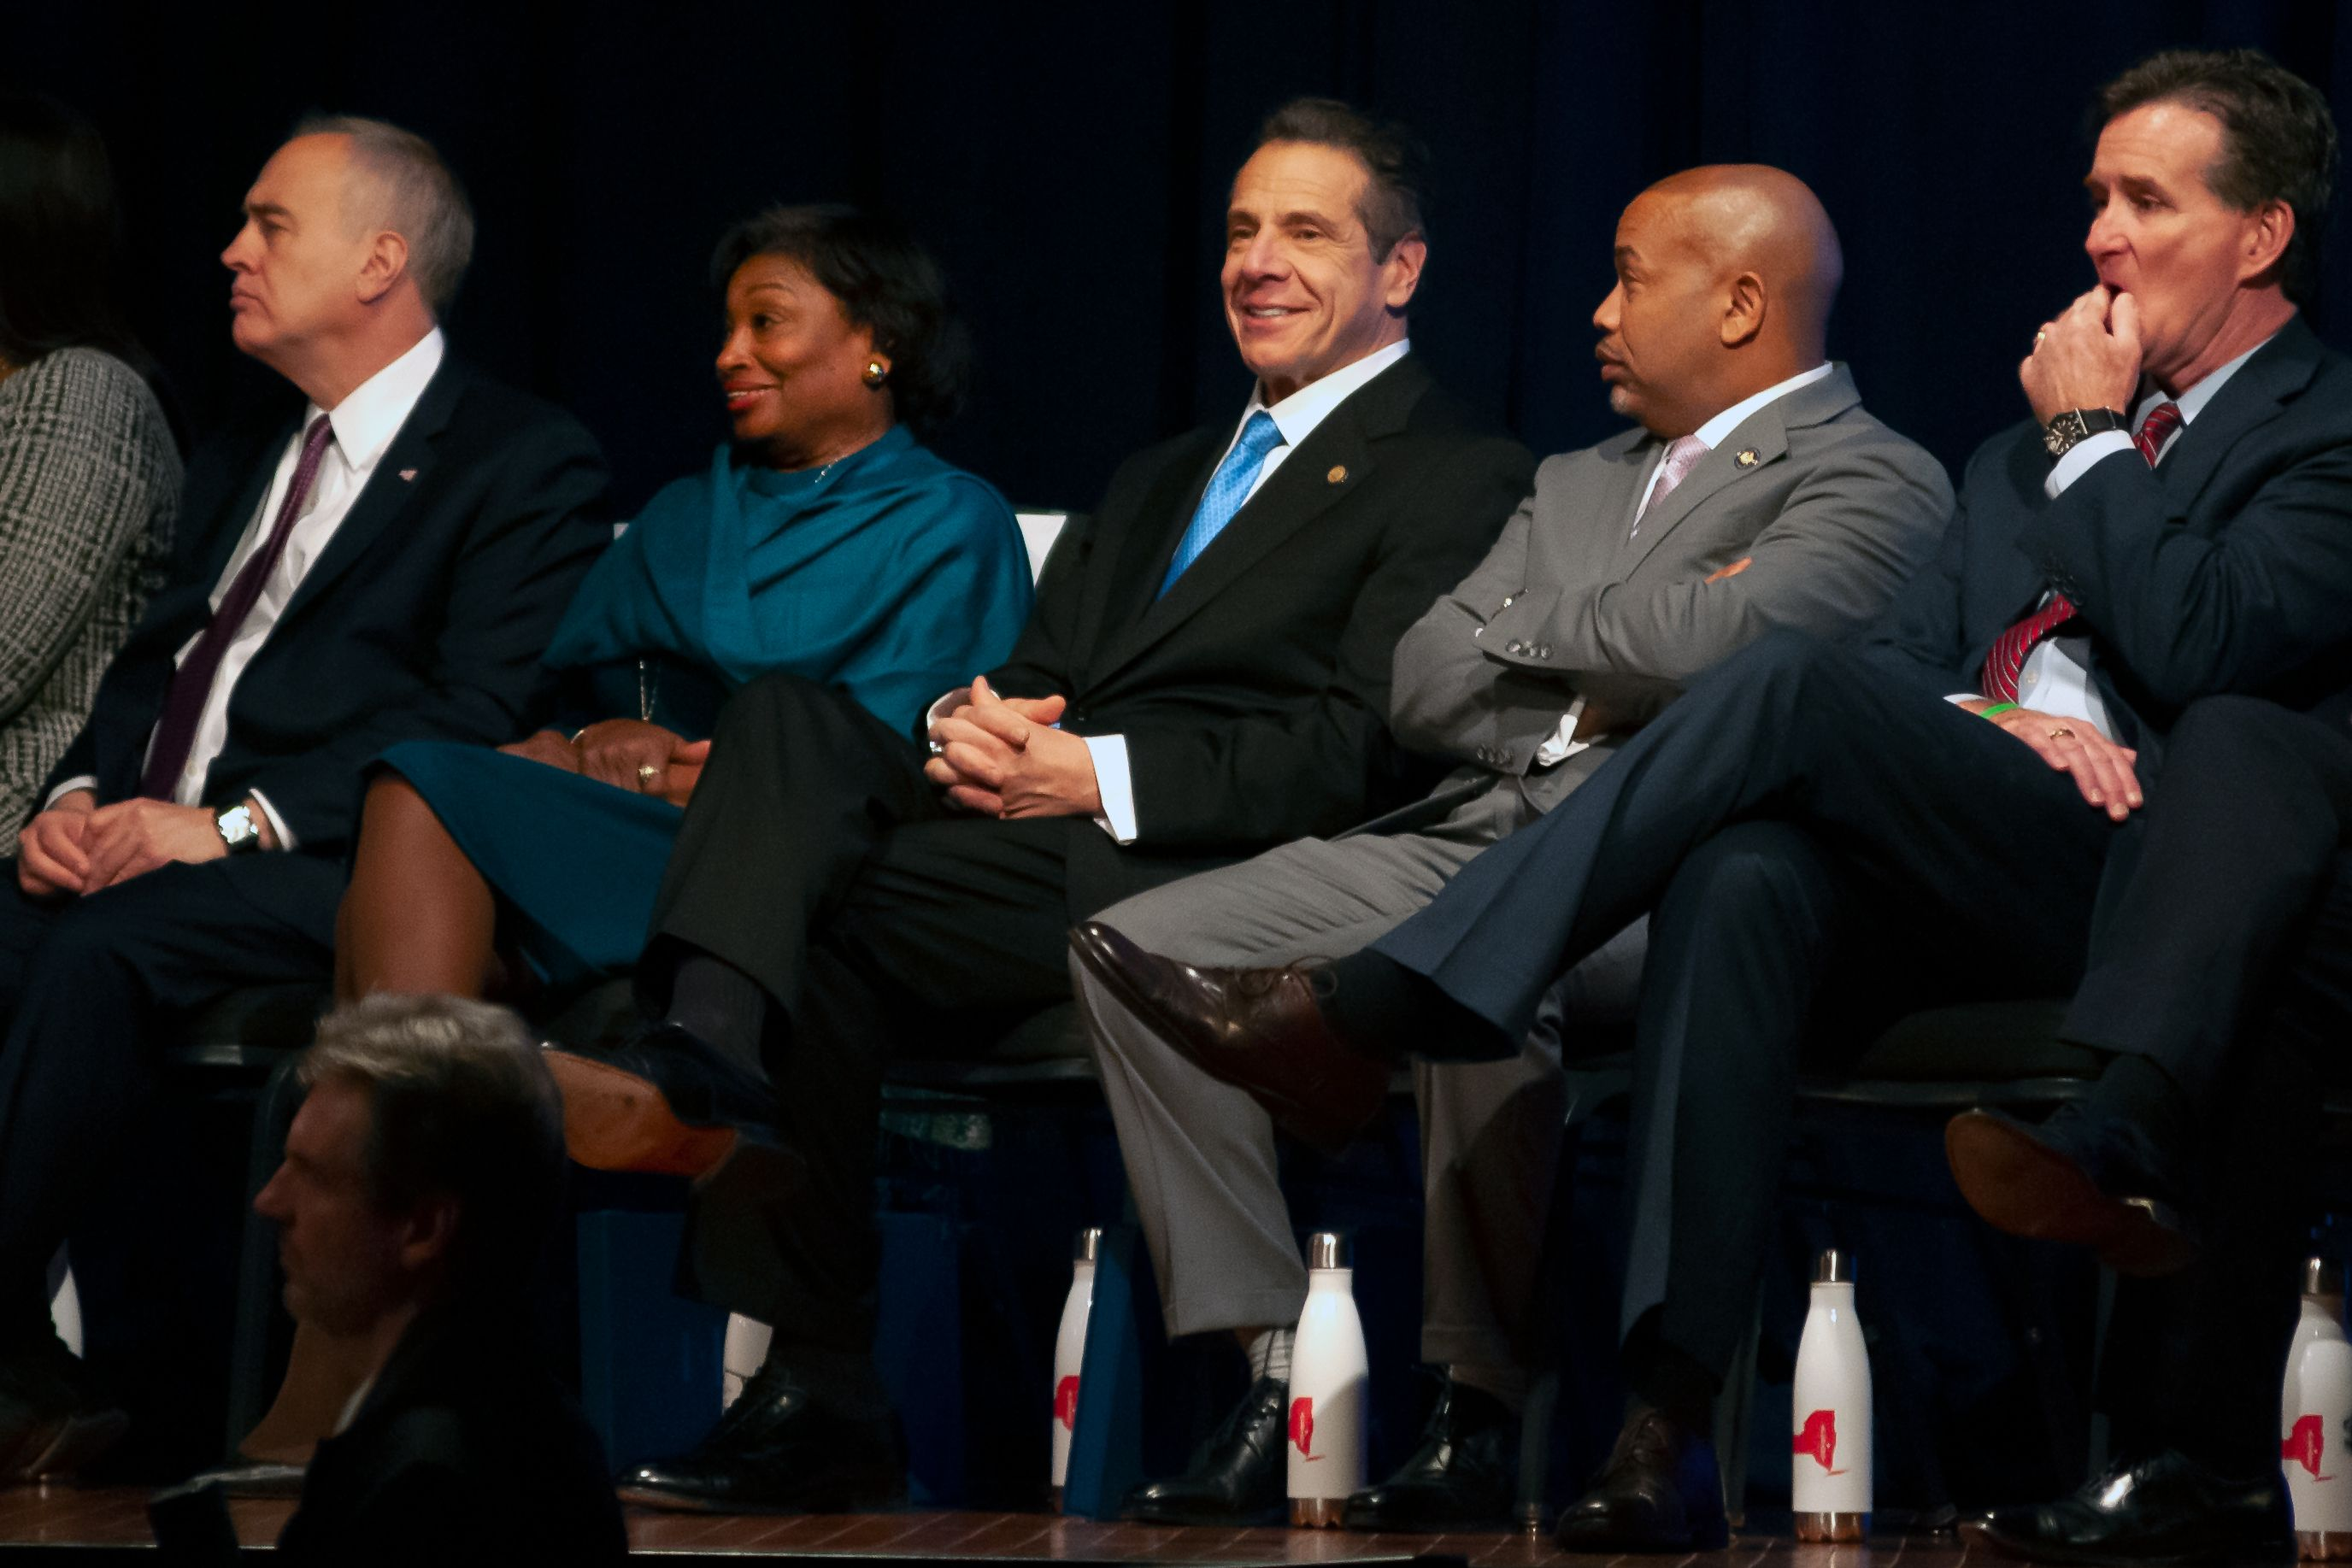 Governor Andrew Cuomo sits with Senate Majority Leader Andrea-Stewart-Cousins and Assembly Speaker Carl Heastie before delivering his State of the State address in Albany.